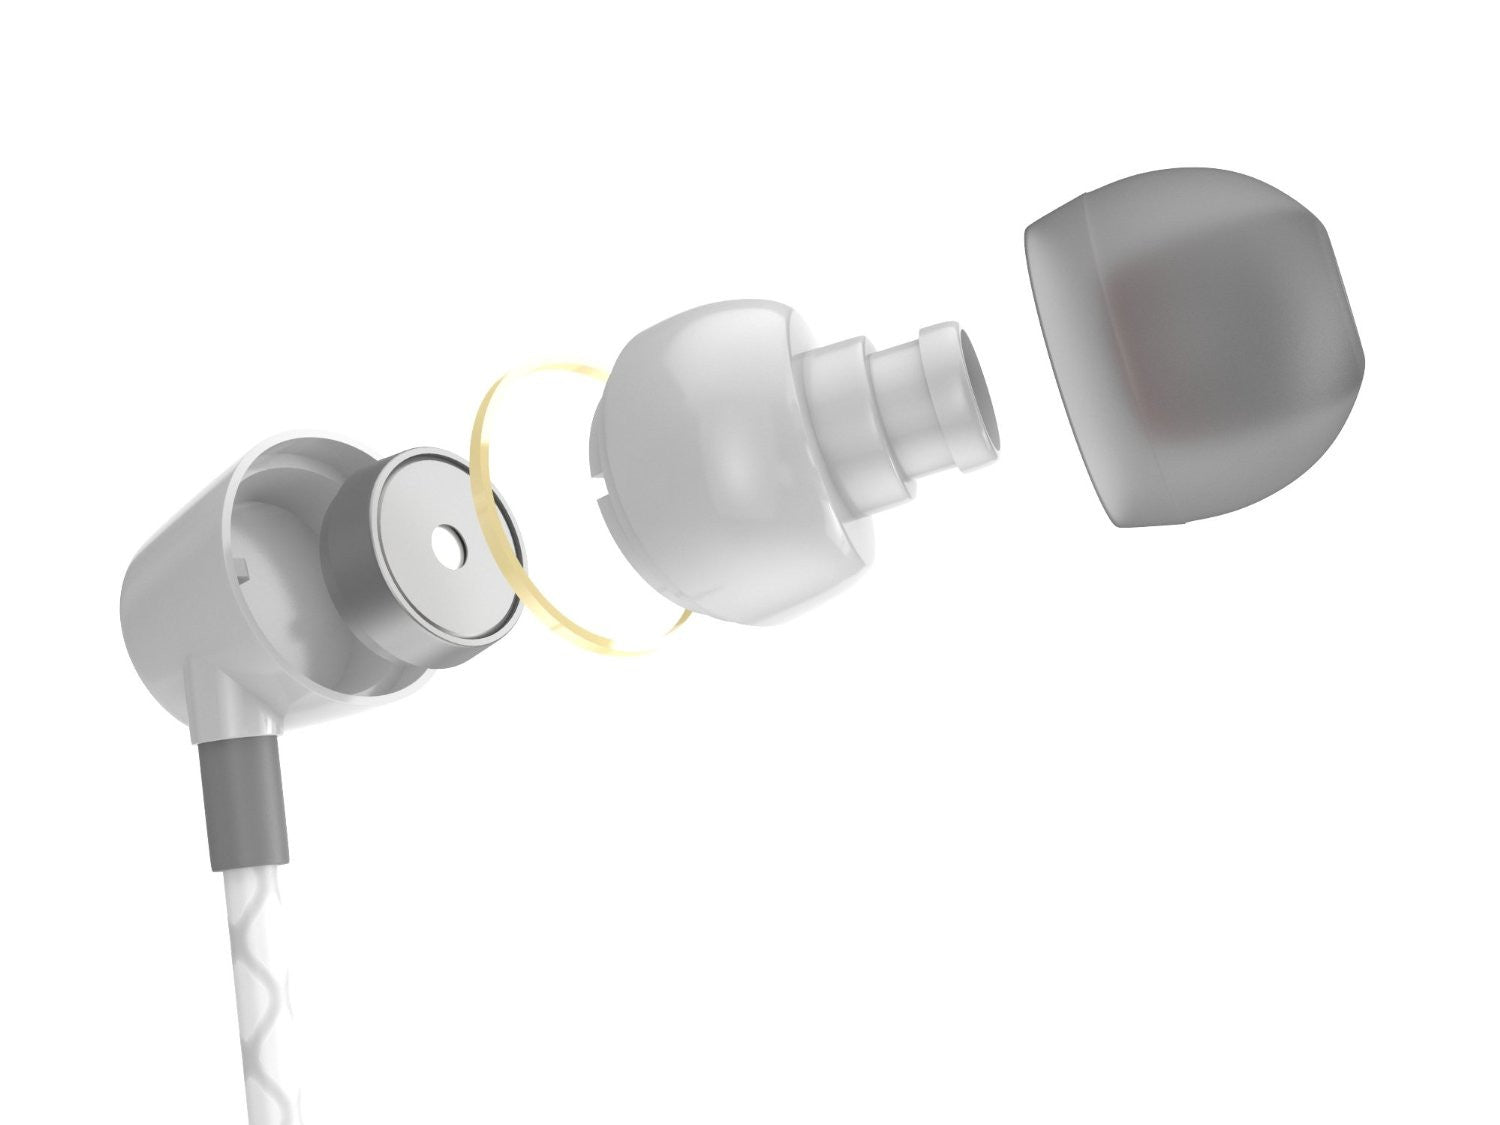 Wired 3.5MM Headphones Earphones, Ghostek® Turbine White Series Wired Earbuds | Built-In Microphone